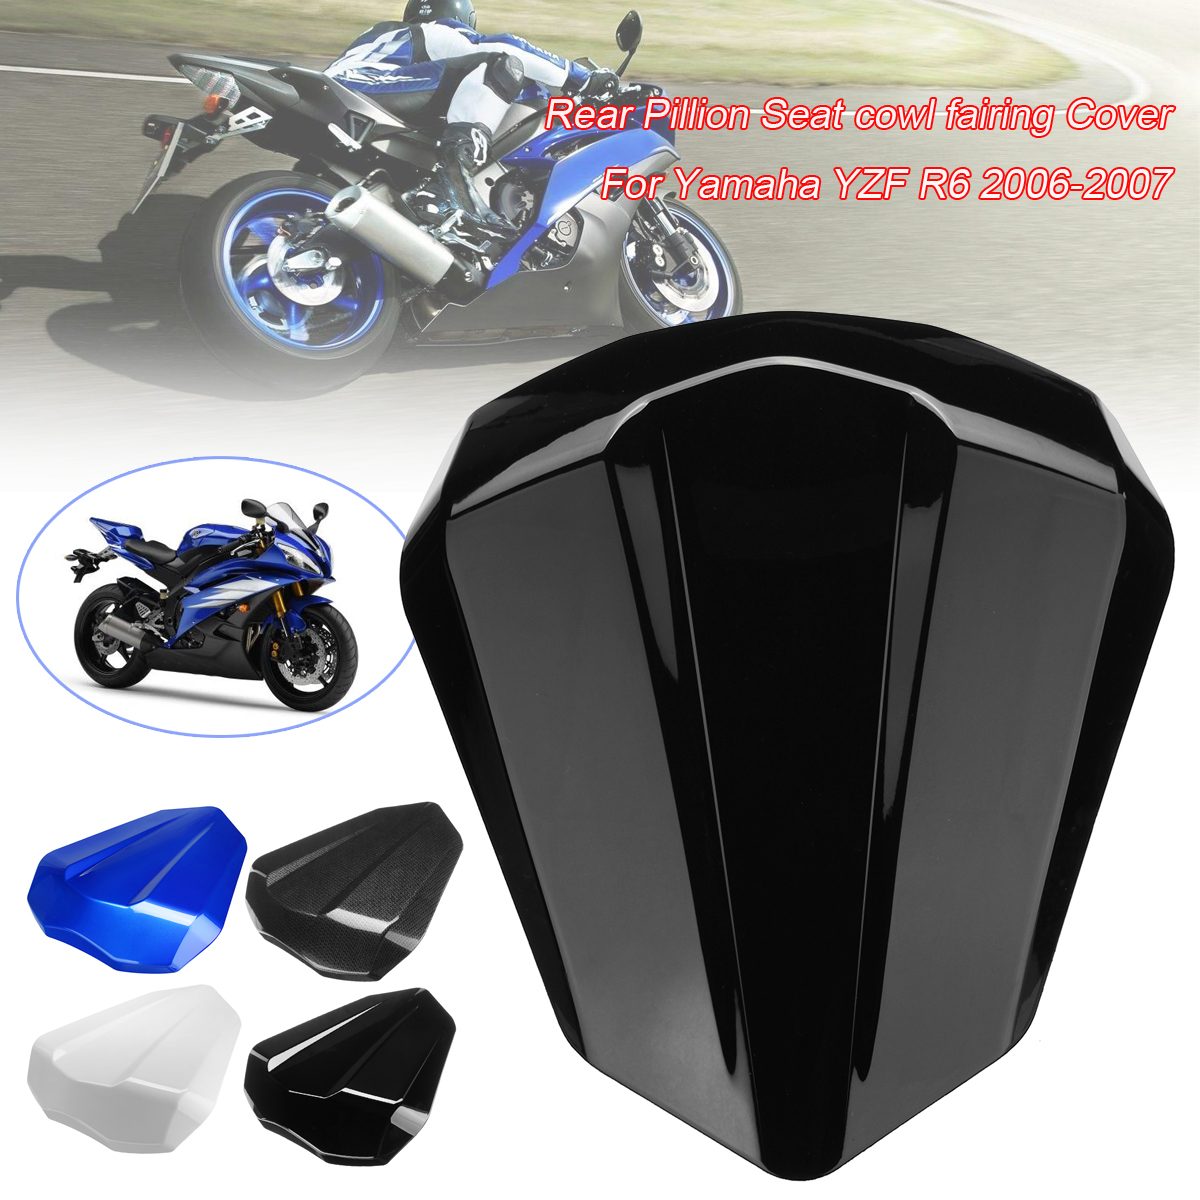 Motorcycle ABS Plastic Rear Passenger Seat Pillion Cowl Fairing Cover 4Color for Yamaha YZF R6 2006-2007Motorcycle ABS Plastic Rear Passenger Seat Pillion Cowl Fairing Cover 4Color for Yamaha YZF R6 2006-2007